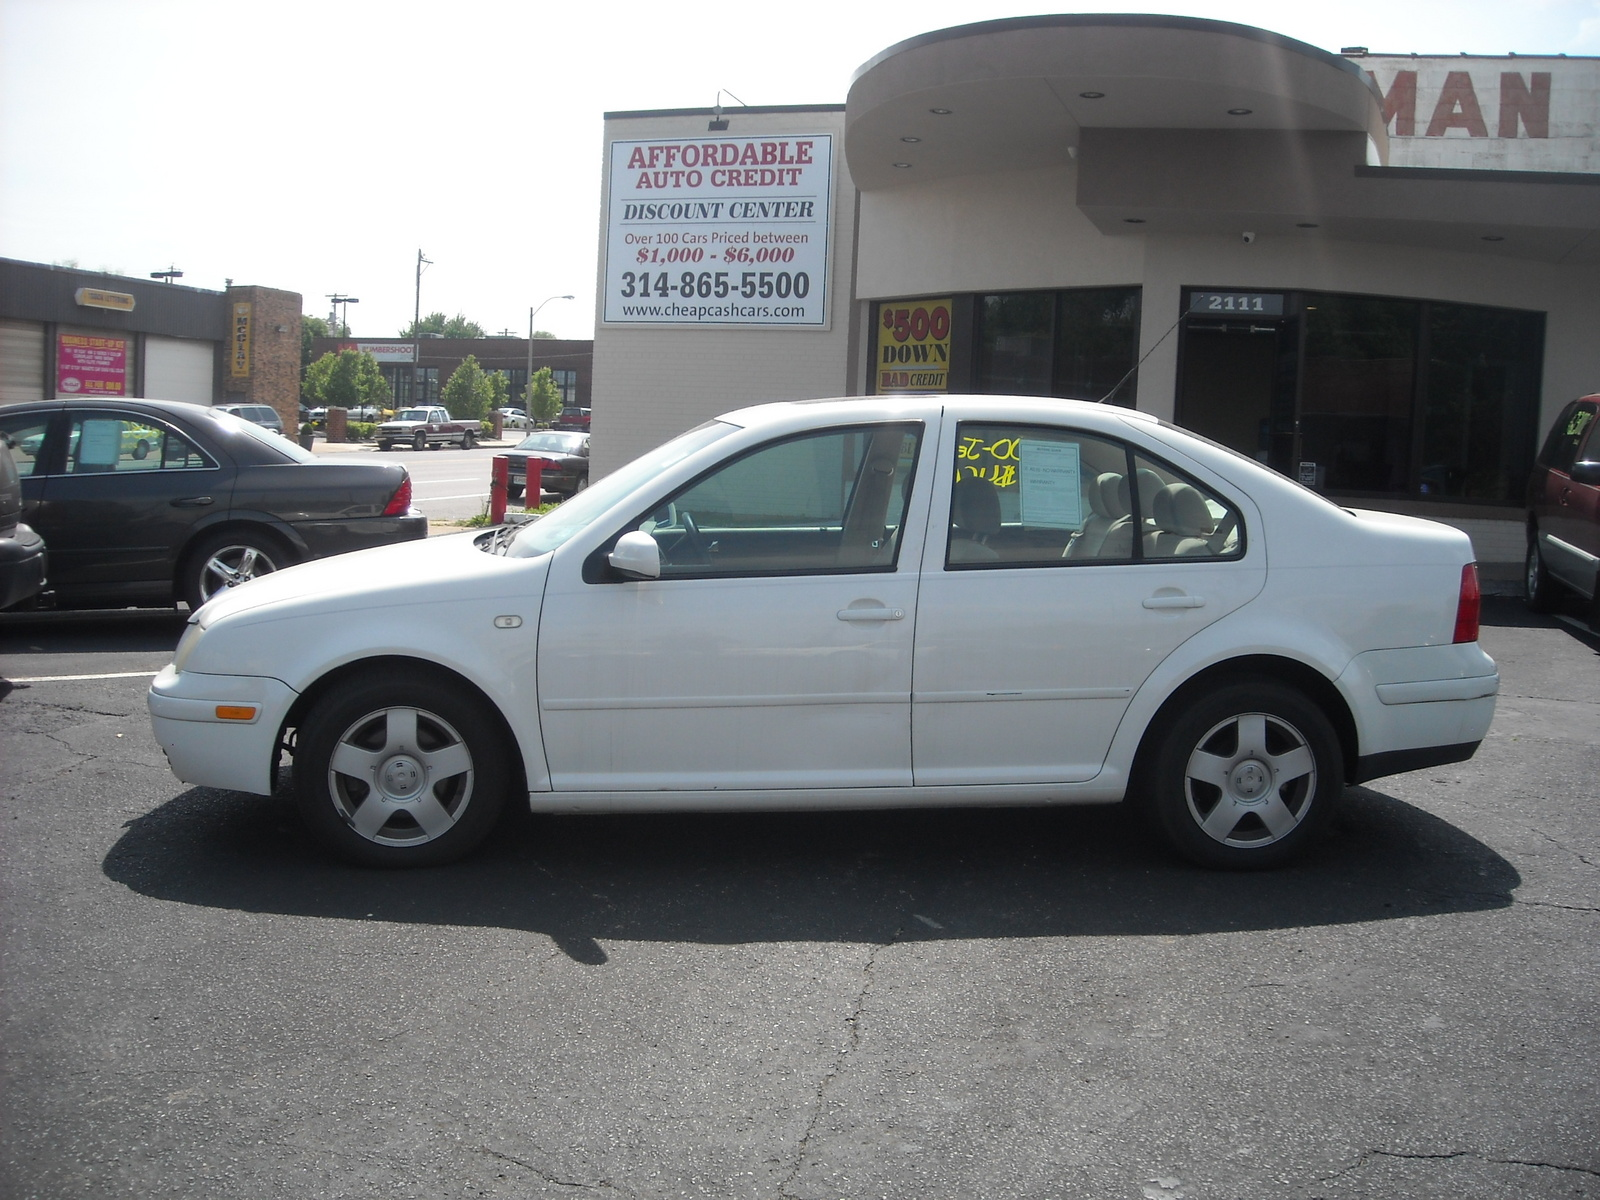 2003 chevrolet malibu exterior pictures cargurus. Cars Review. Best American Auto & Cars Review